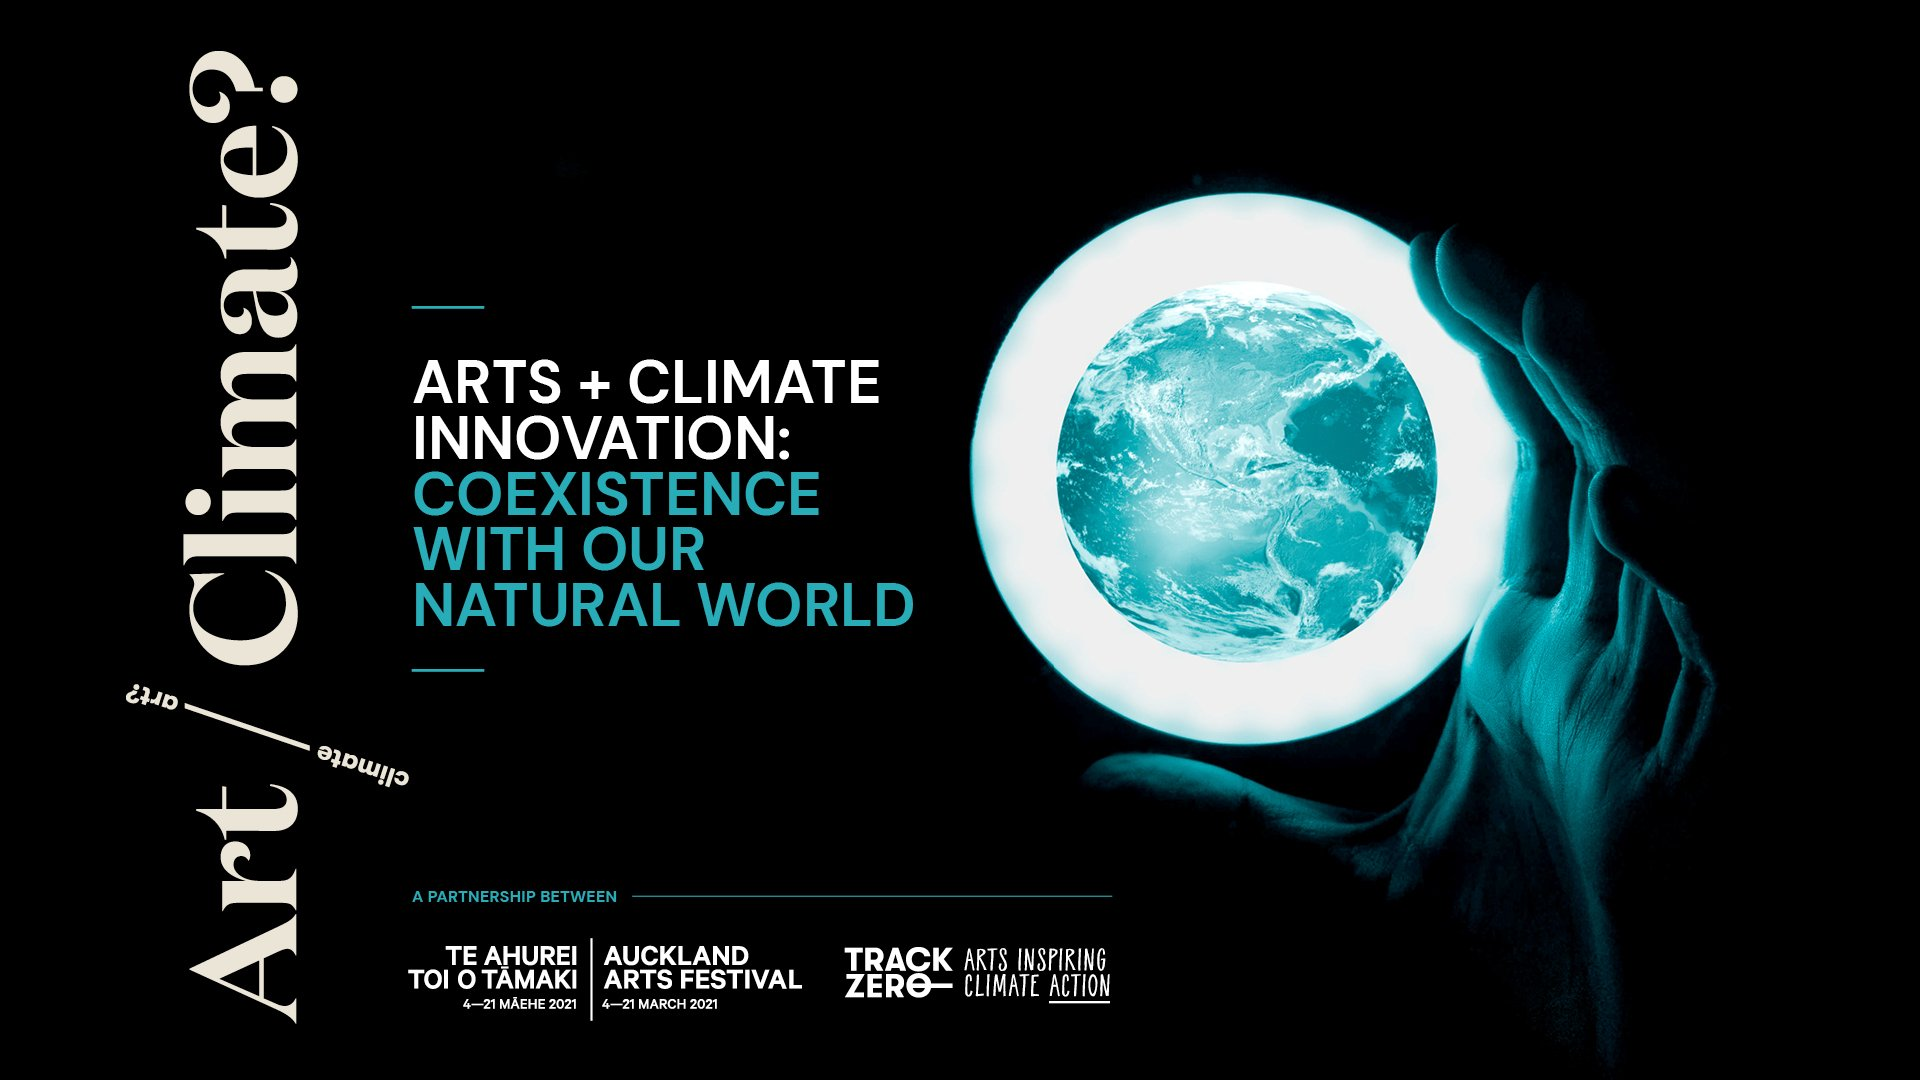 Arts + Climate innovation: Coexistence with our natural world